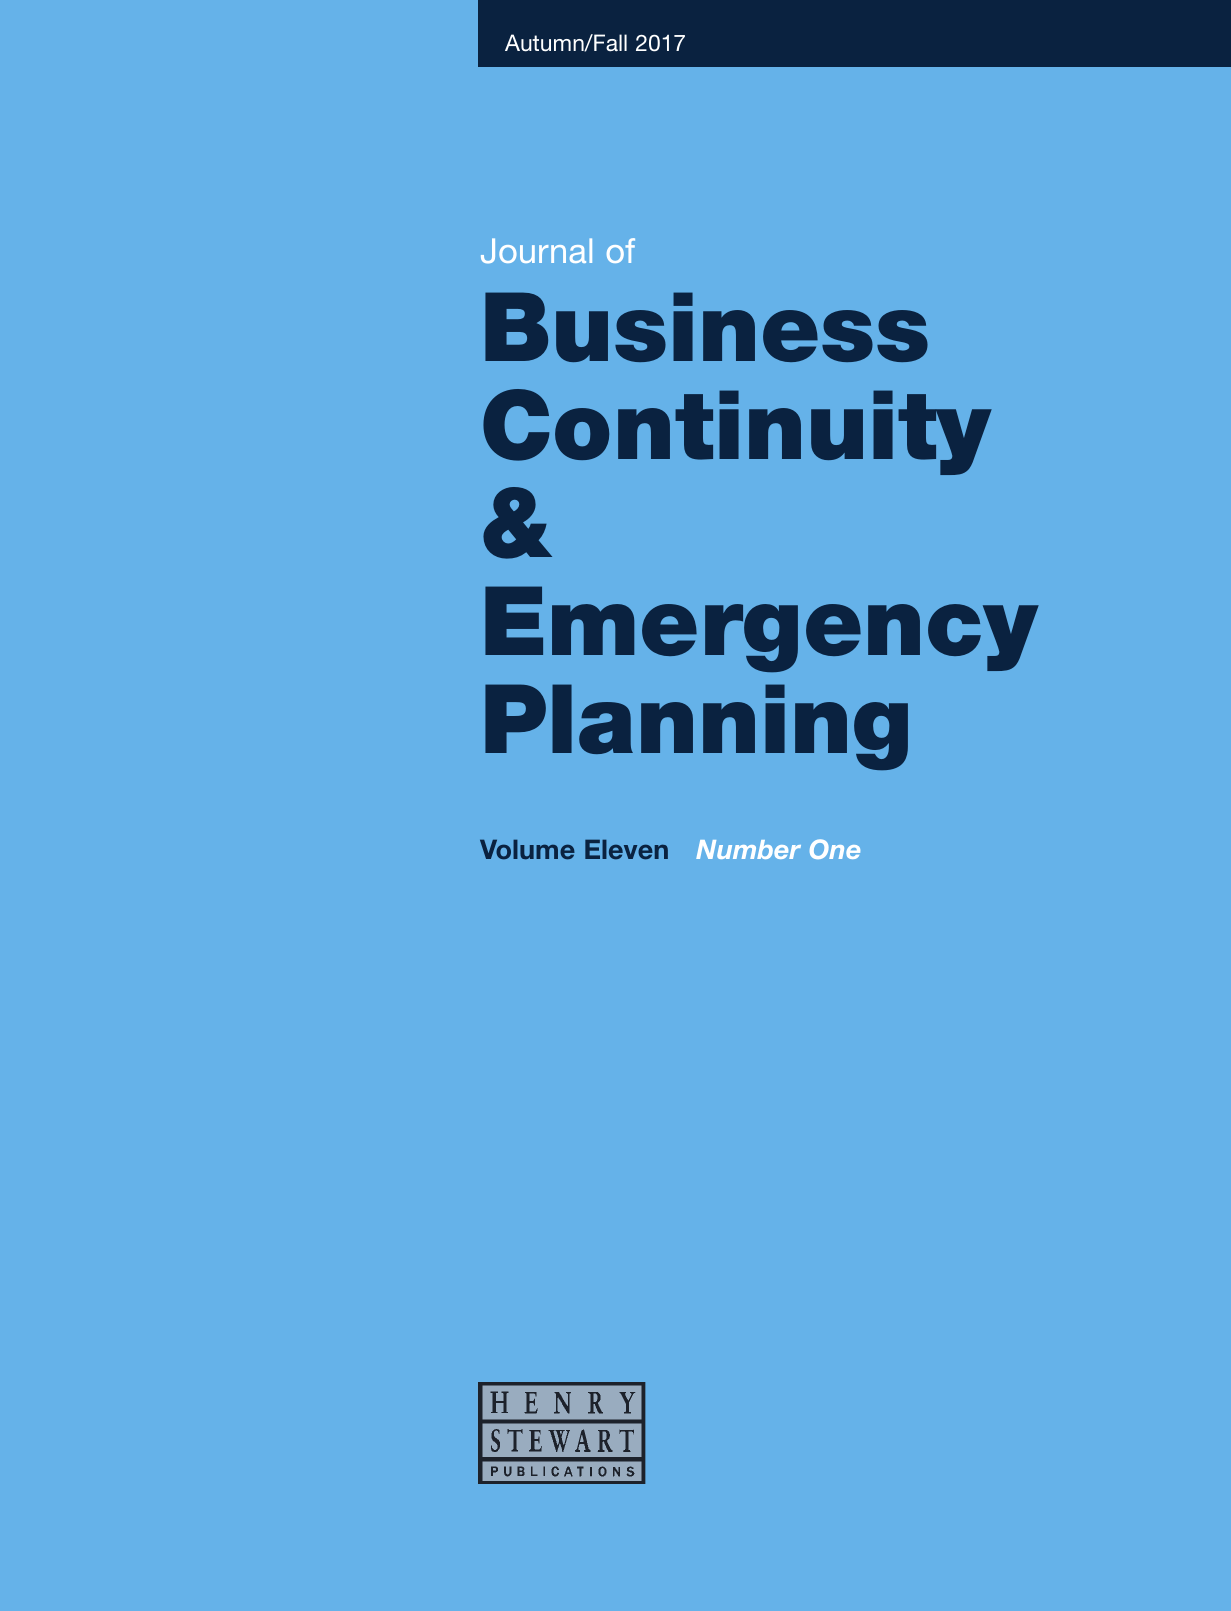 Journal of Business Continuity & Emergency Planning Logo